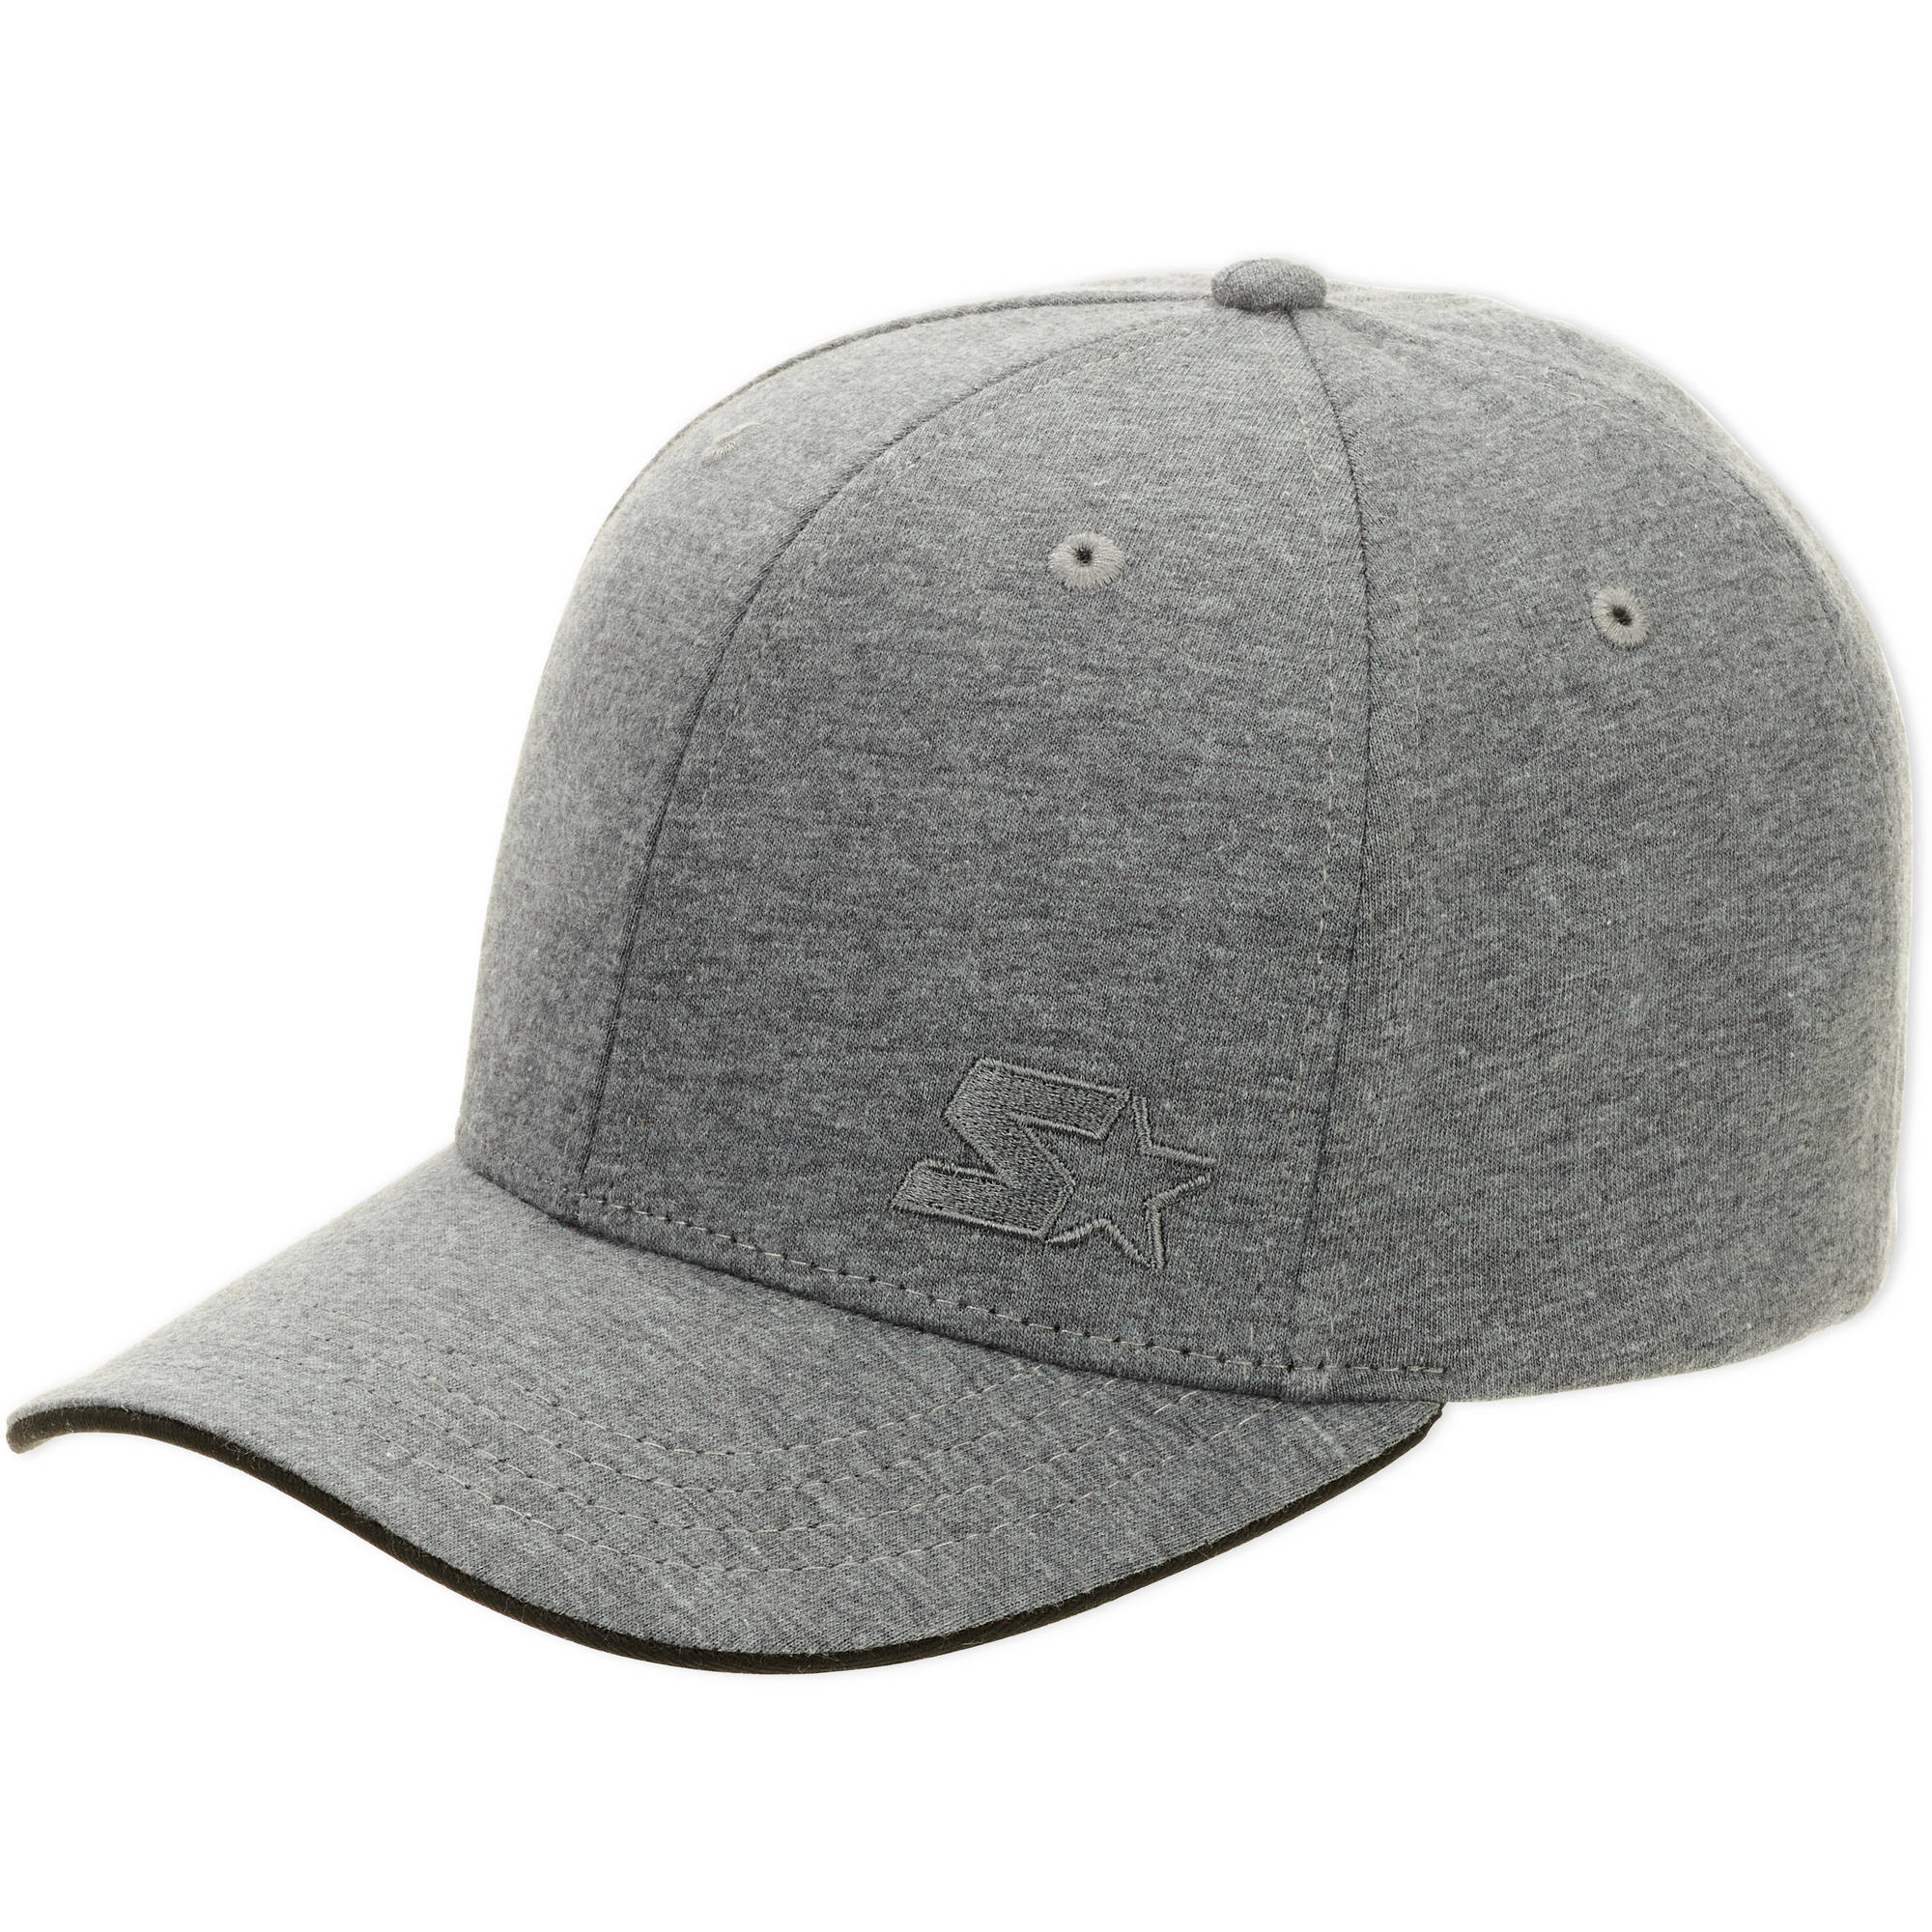 Starter Grey Jersey Men's Hat